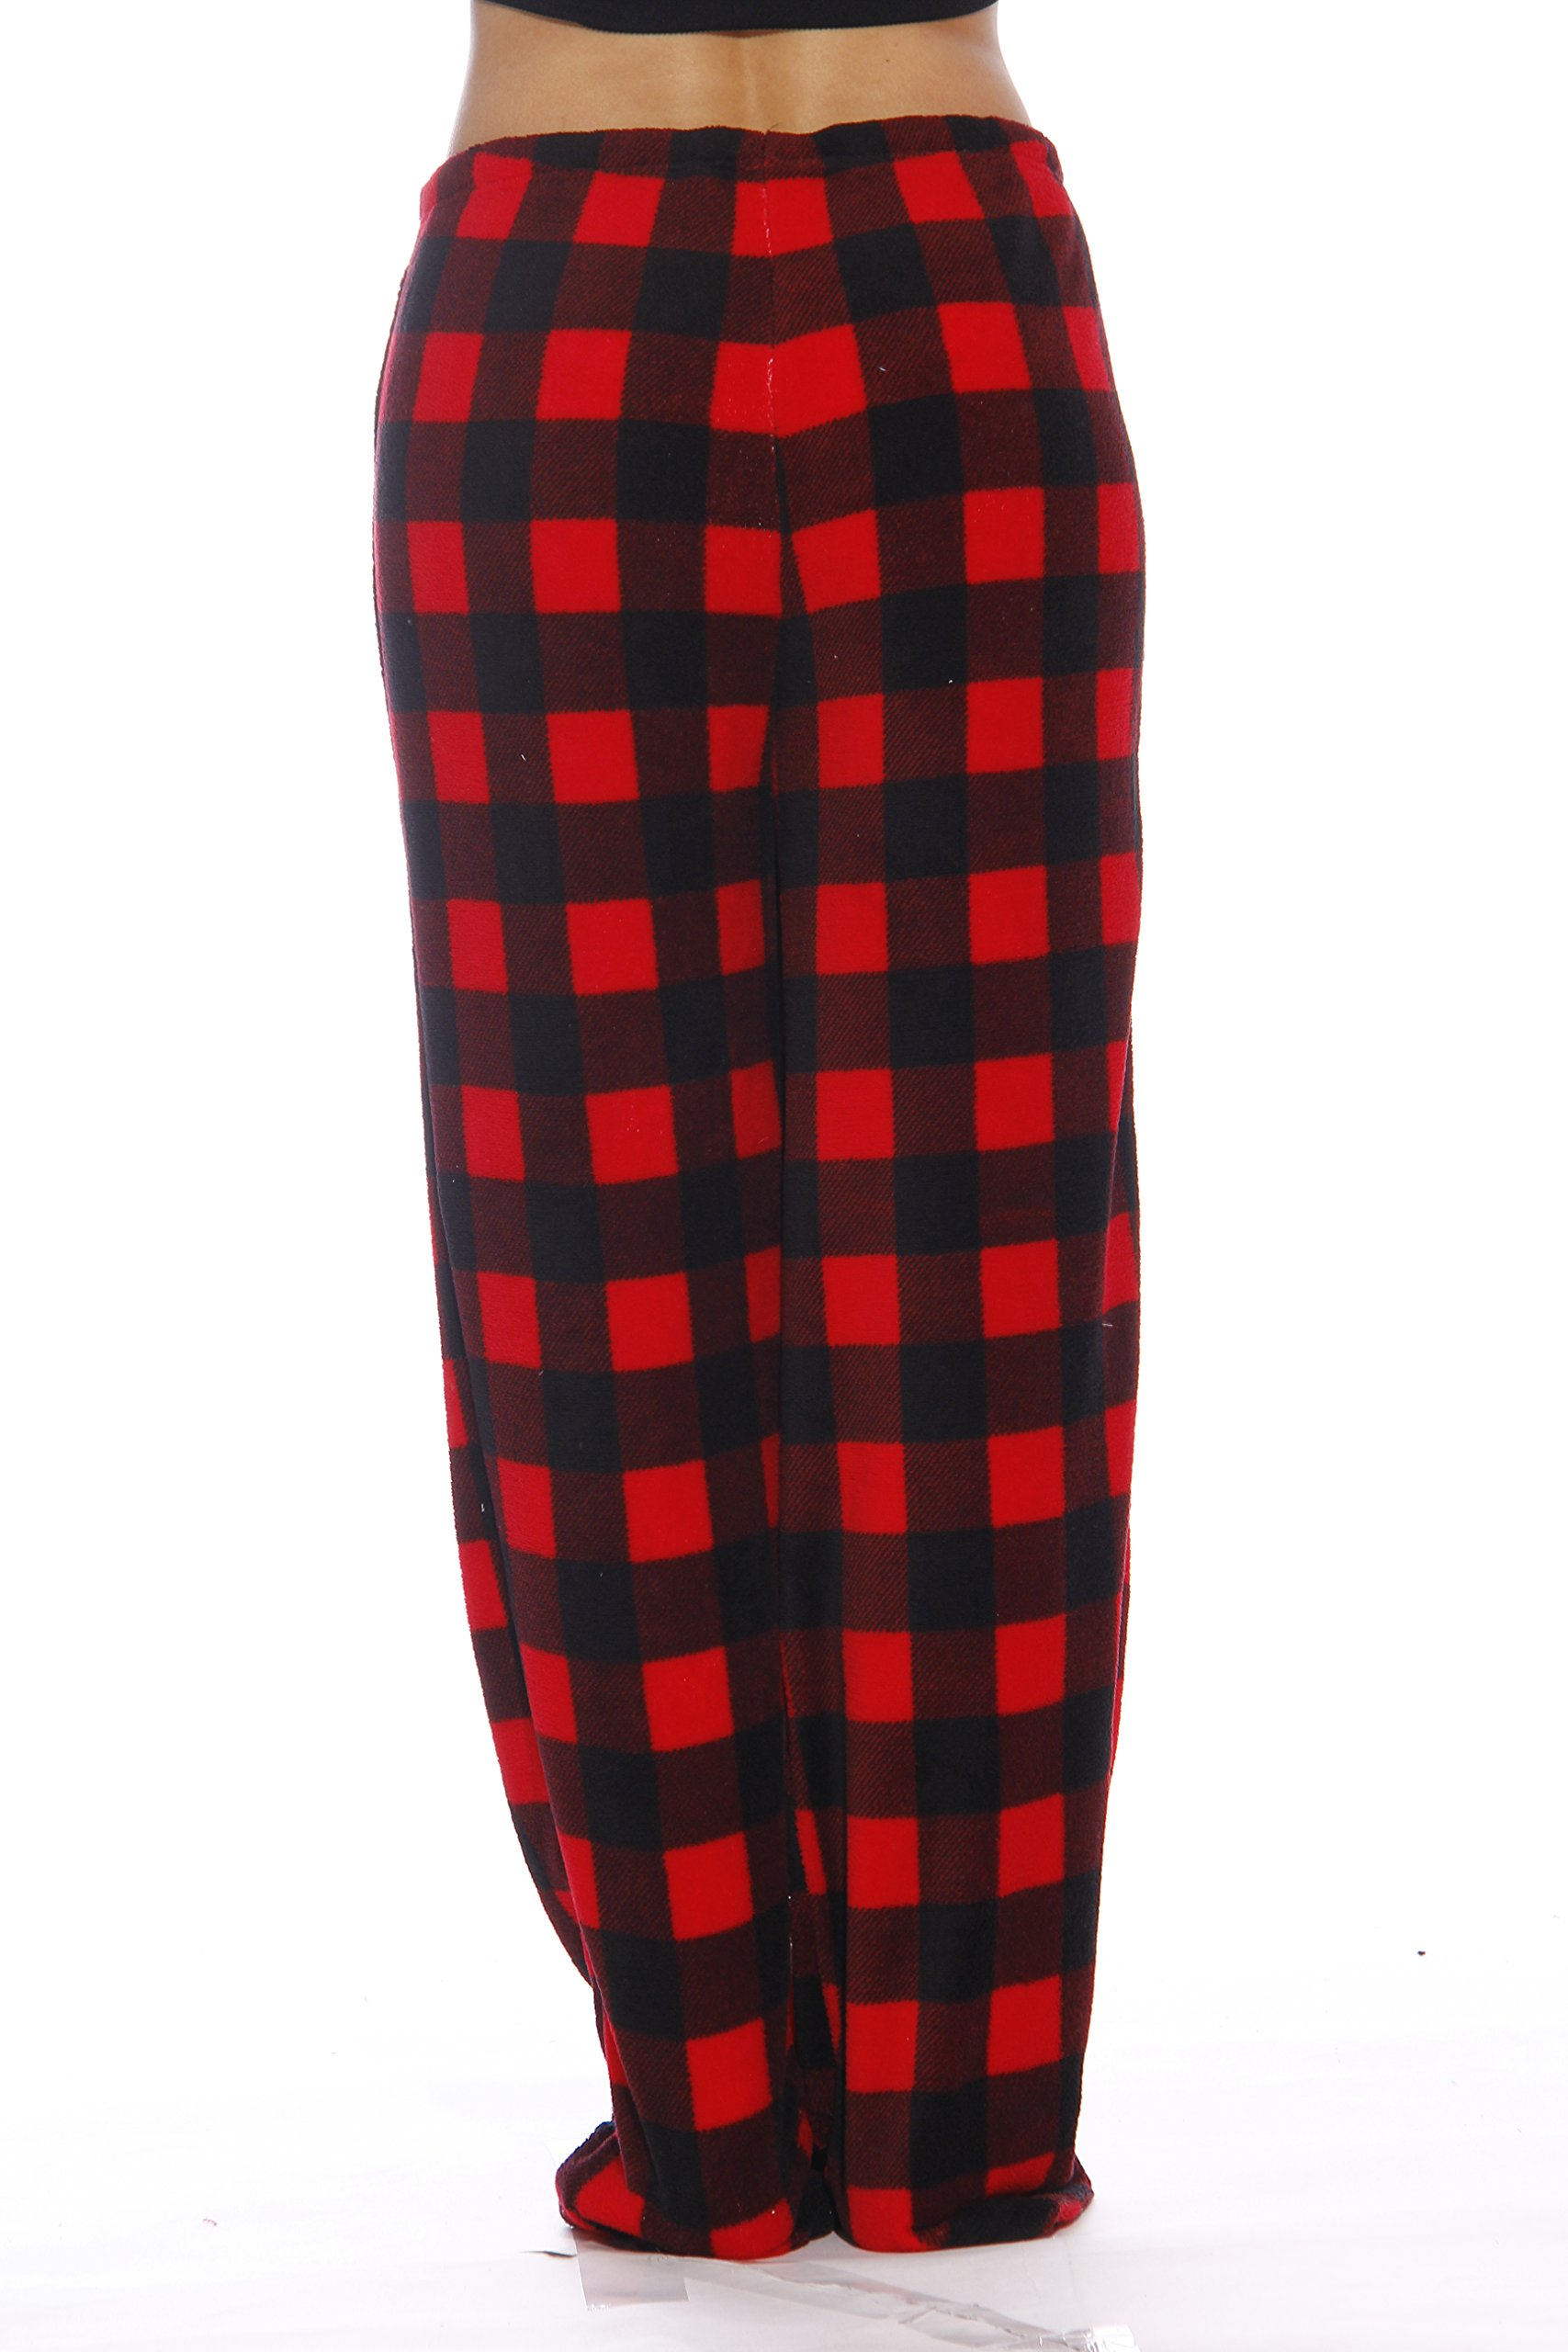 Just Love Women's Plush Pajama Pants, Small, Buffalo Plaid Red by Just Love (Image #3)